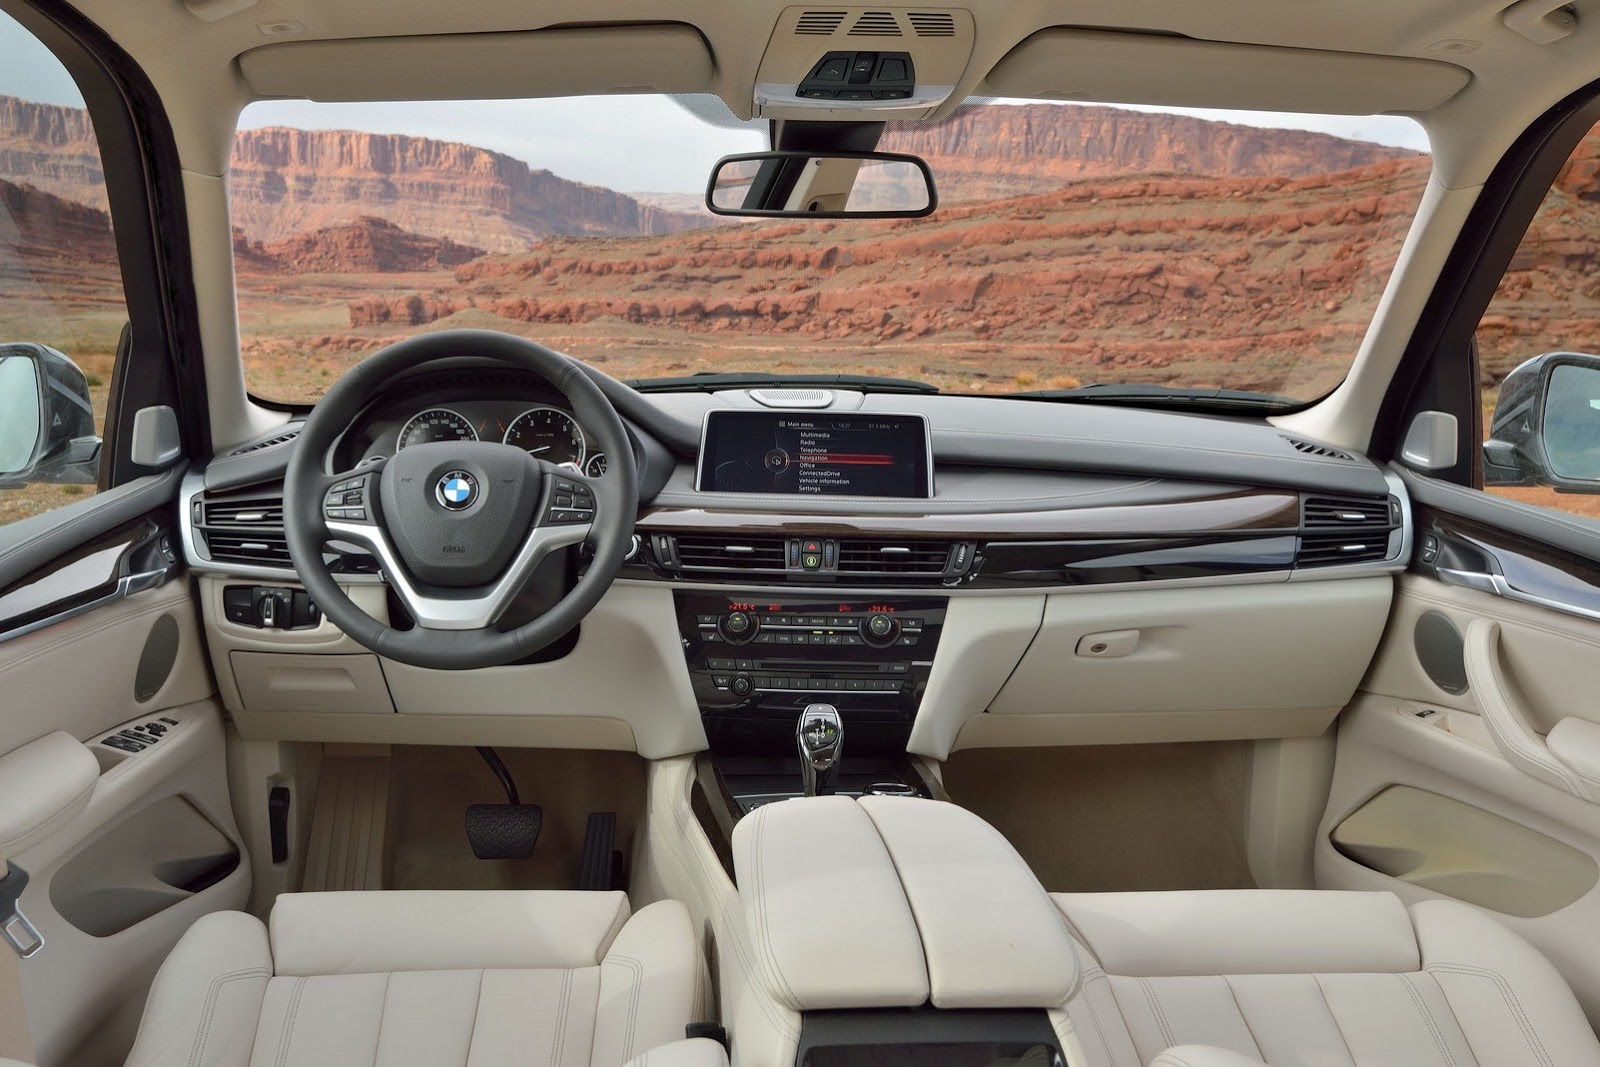 BMW X5 Series  Interior Dashboard